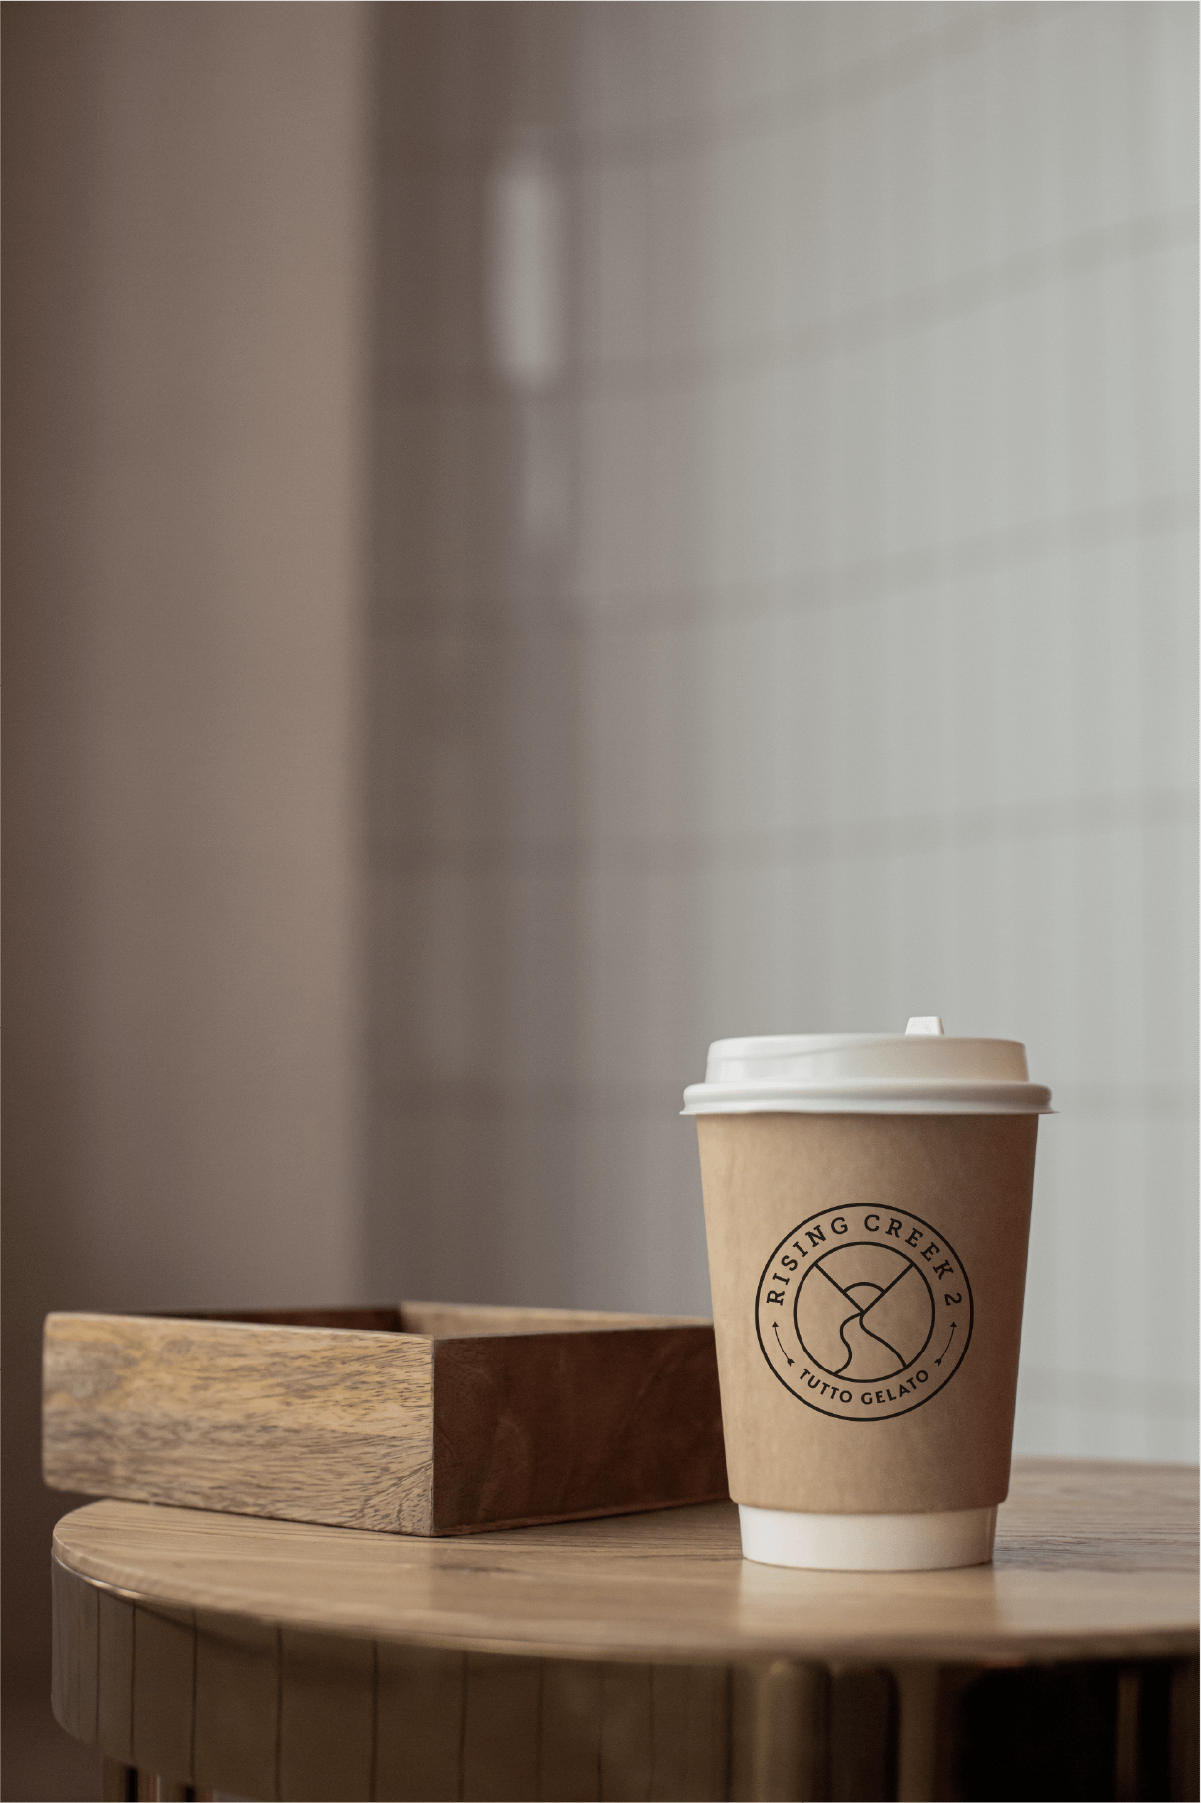 Carry-out coffee cup with the Rising Creek 2 logo printed on it